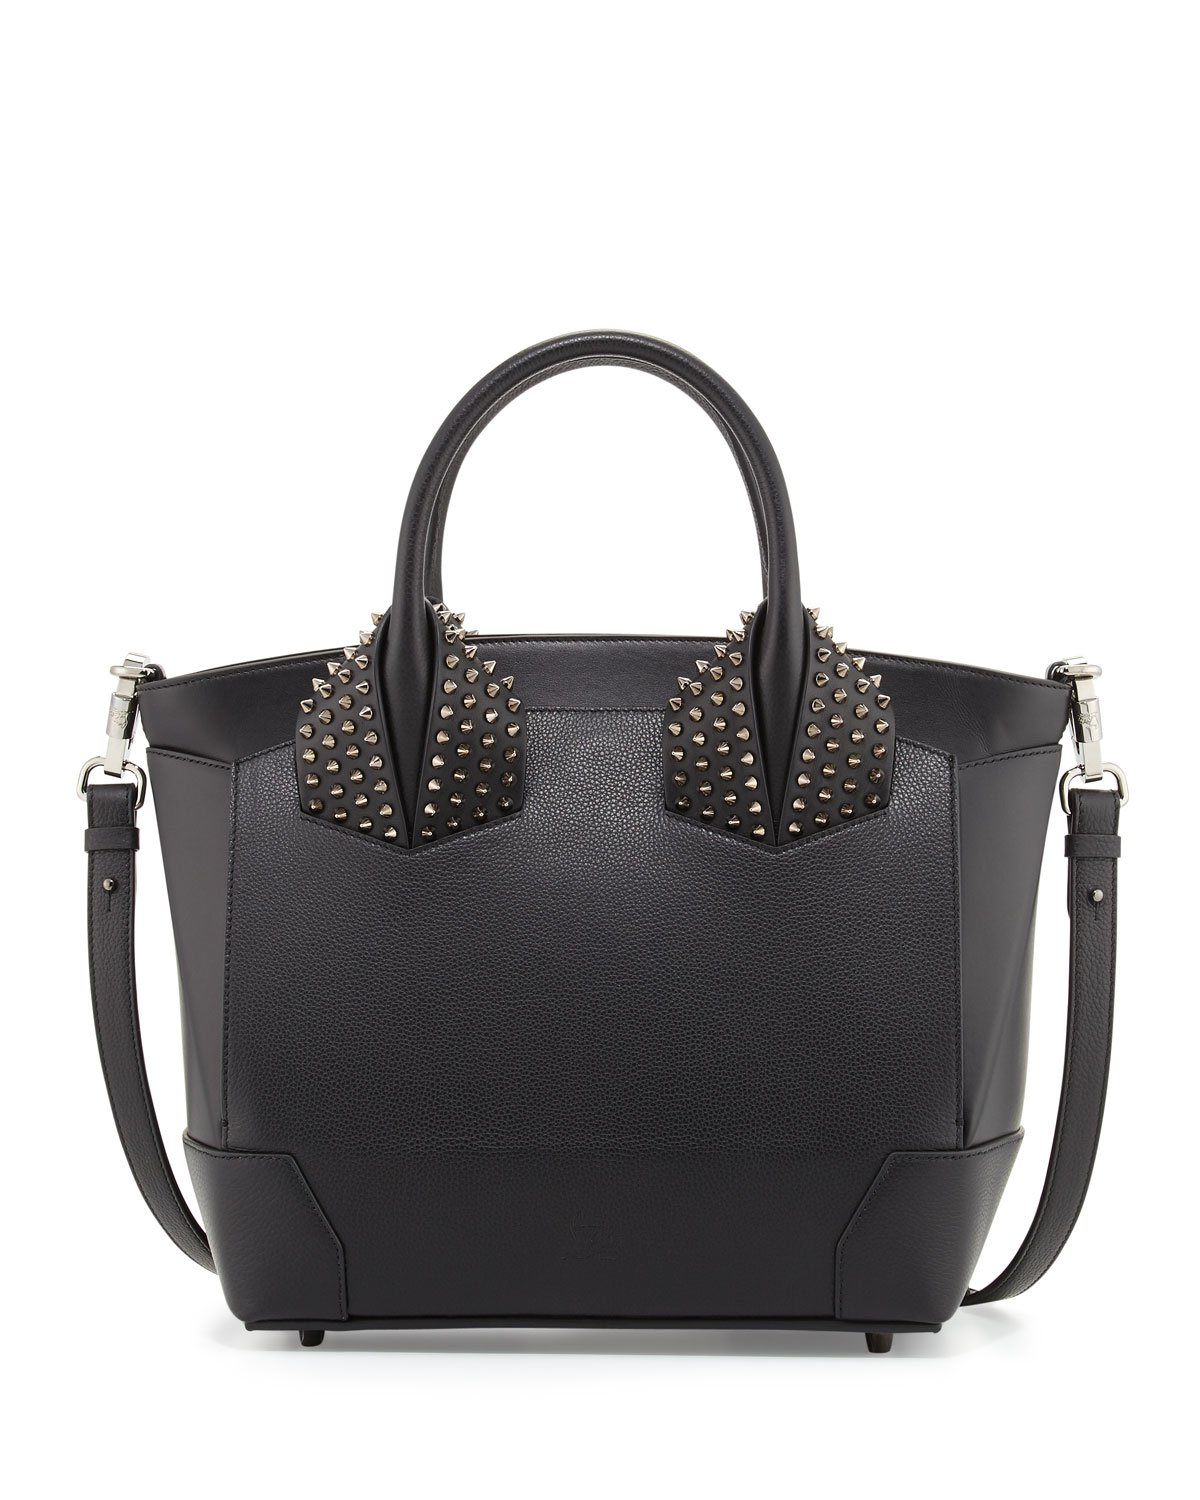 Christian Louboutin Eloise Large Leather Tote Bag In Black